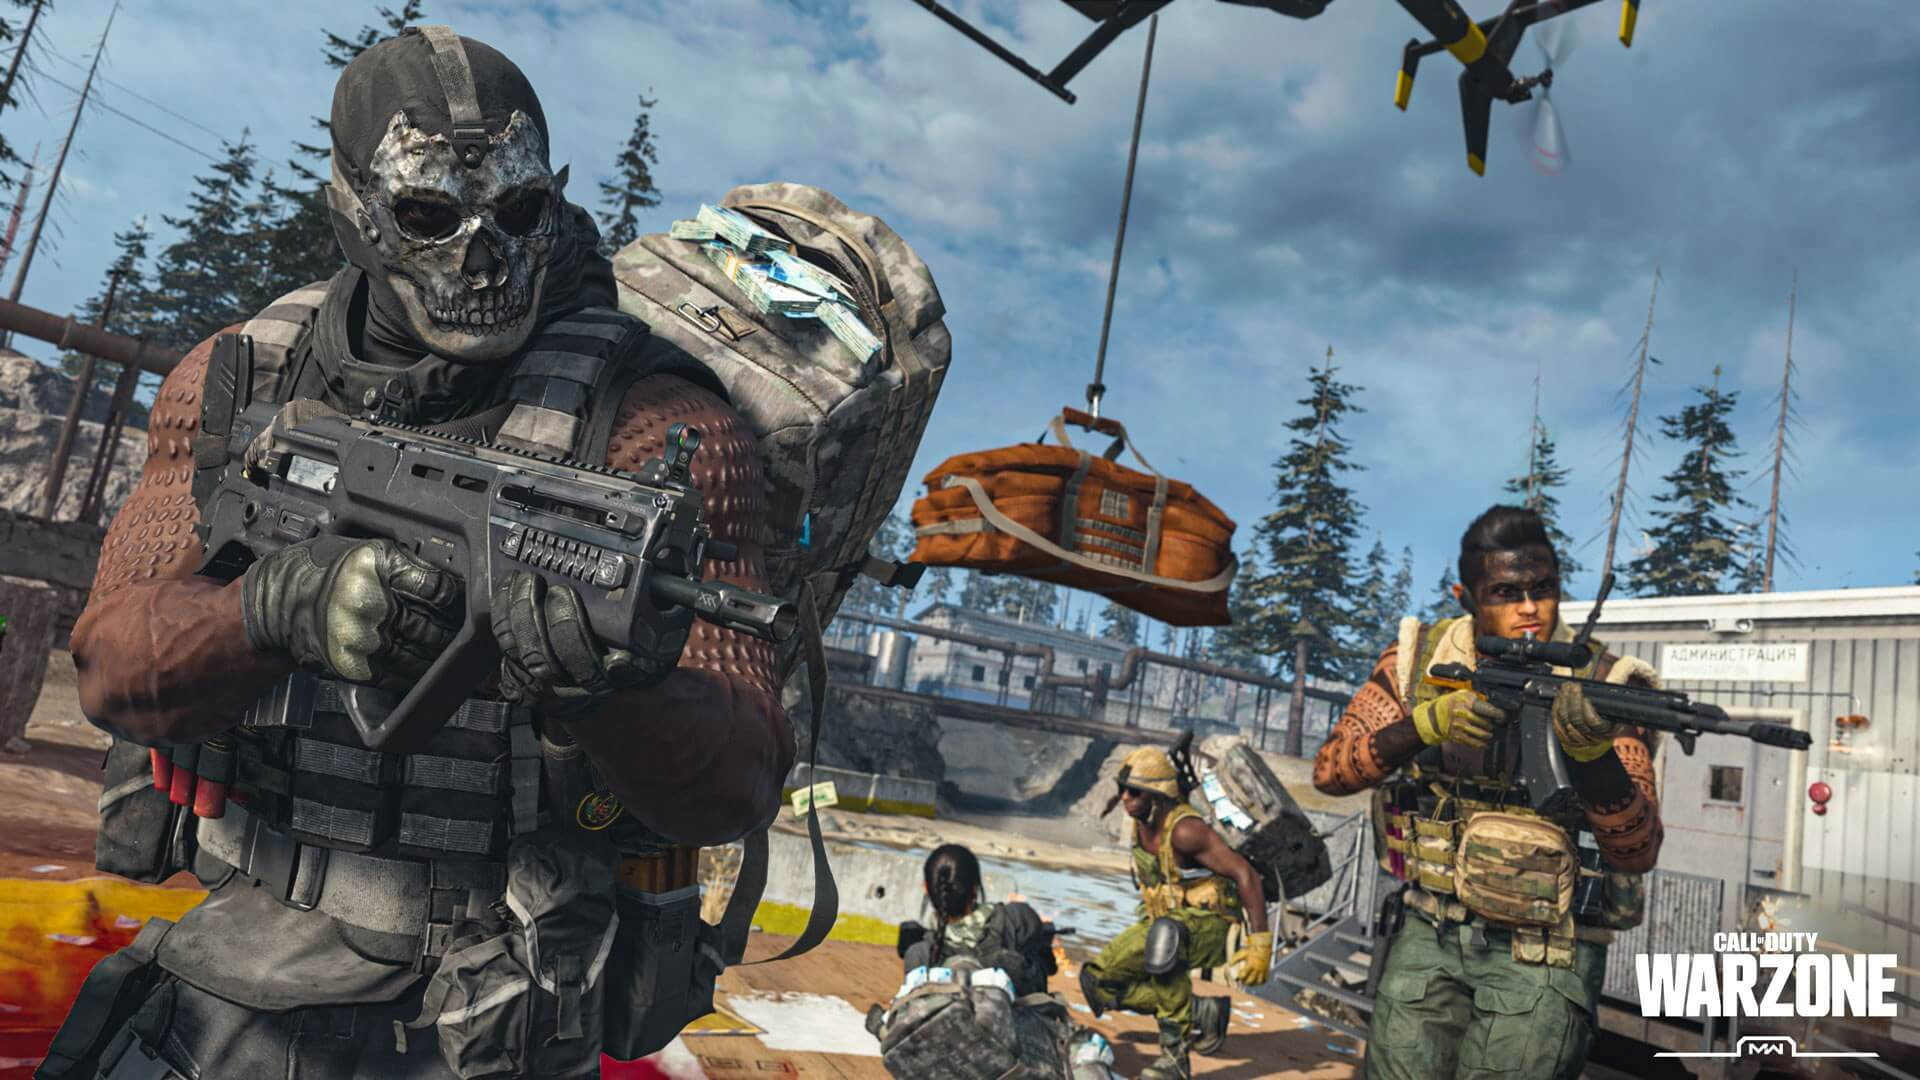 Activision's F2P battle royale entry, Call of Duty: Warzone, launches tomorrow